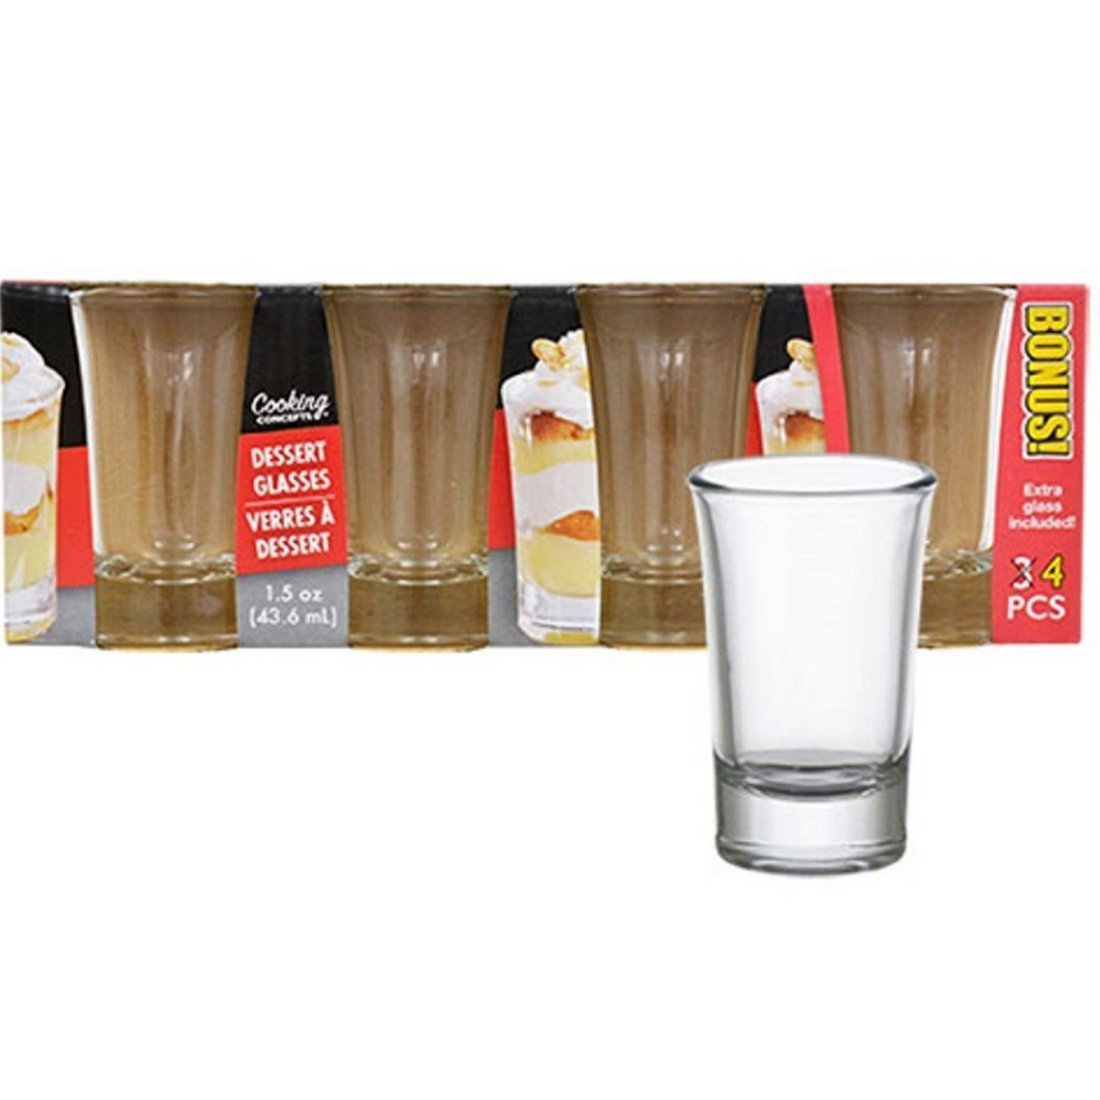 1.5-oz. Dessert Shot Glasses, 4-Pack